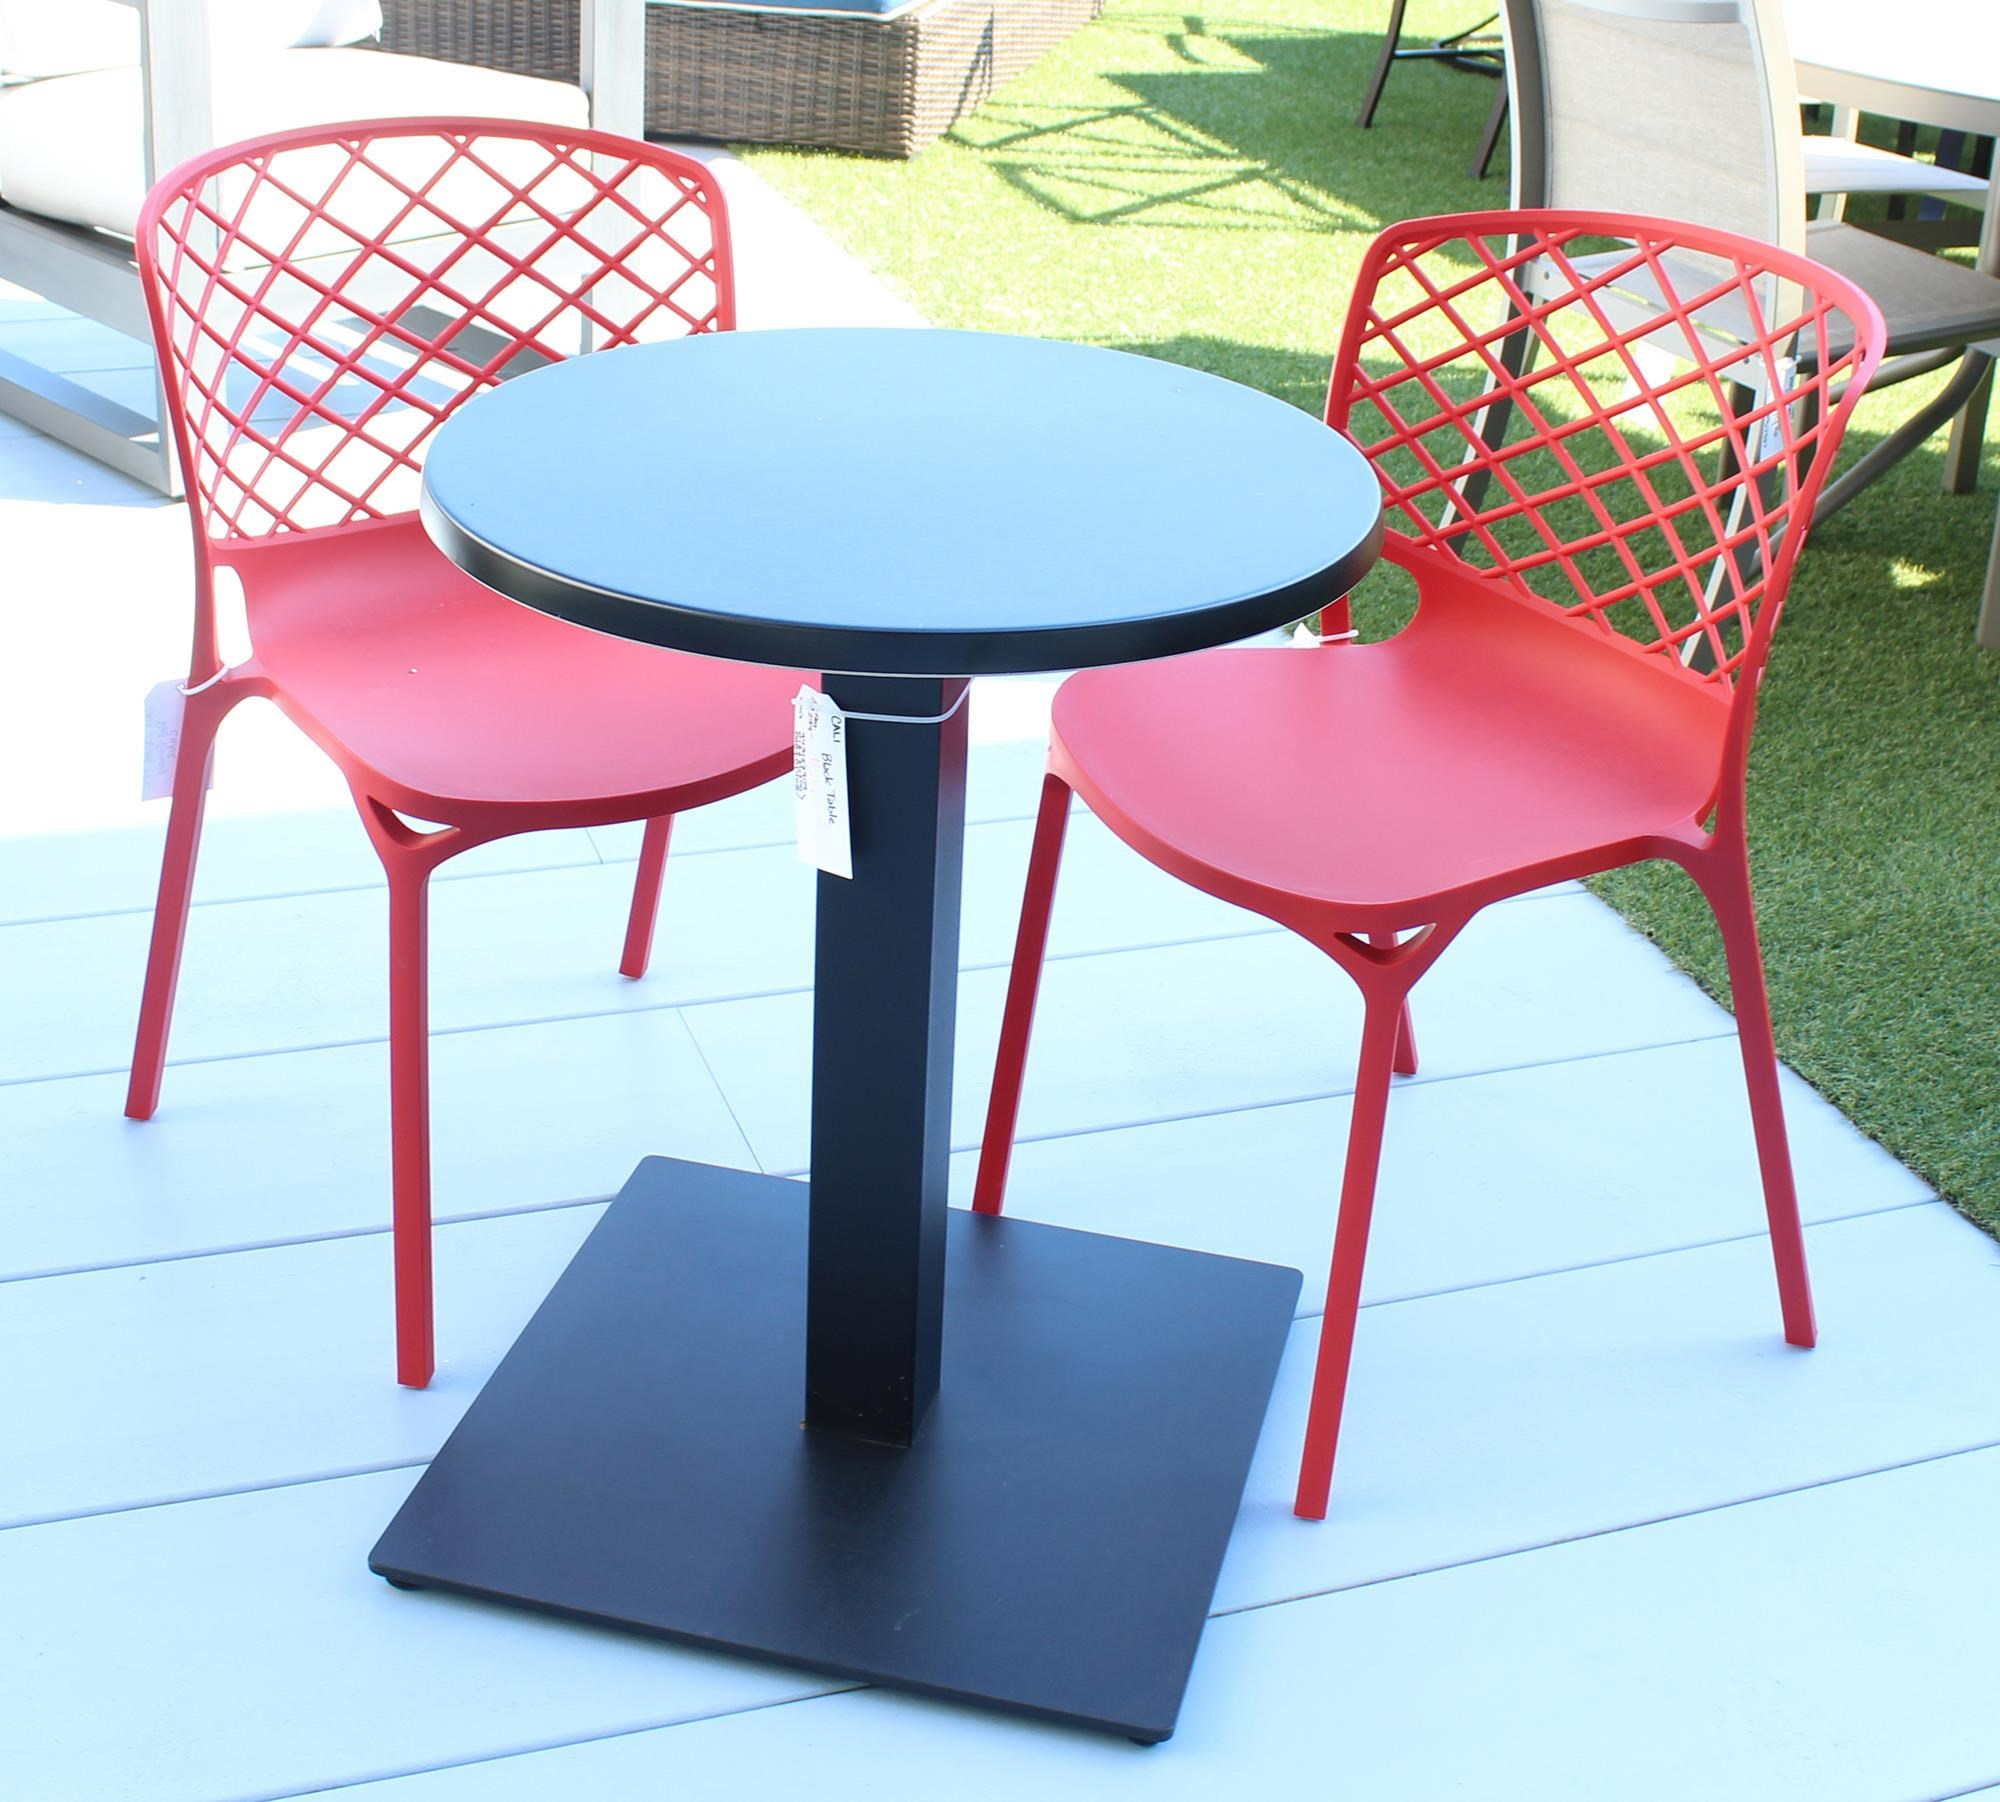 Dining 3 Piece Outdoor Conversation Set by Barrale at Belfort Furniture